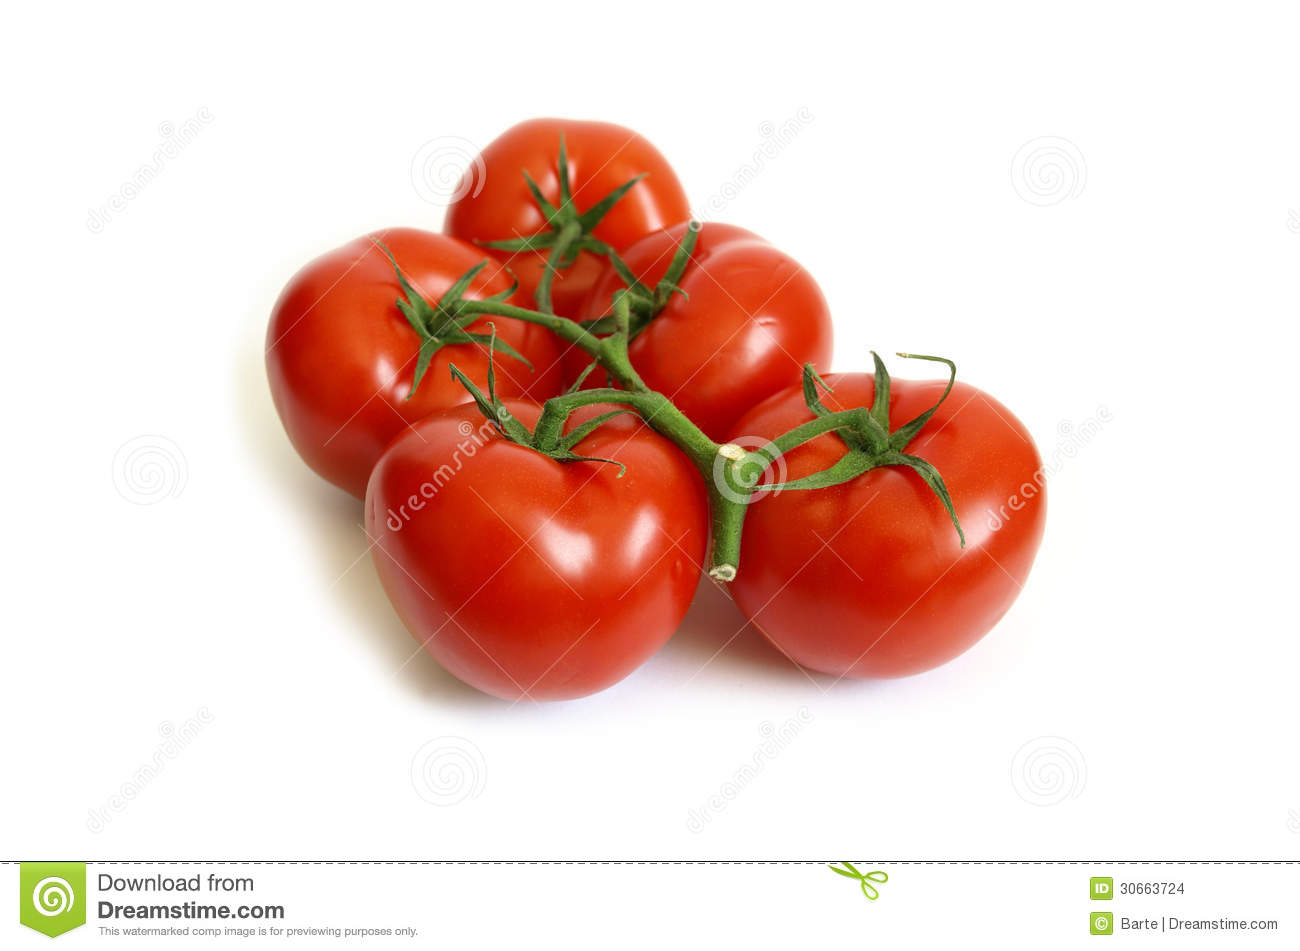 Fresh Red Tomatoes Stock Images - Image: 30663724